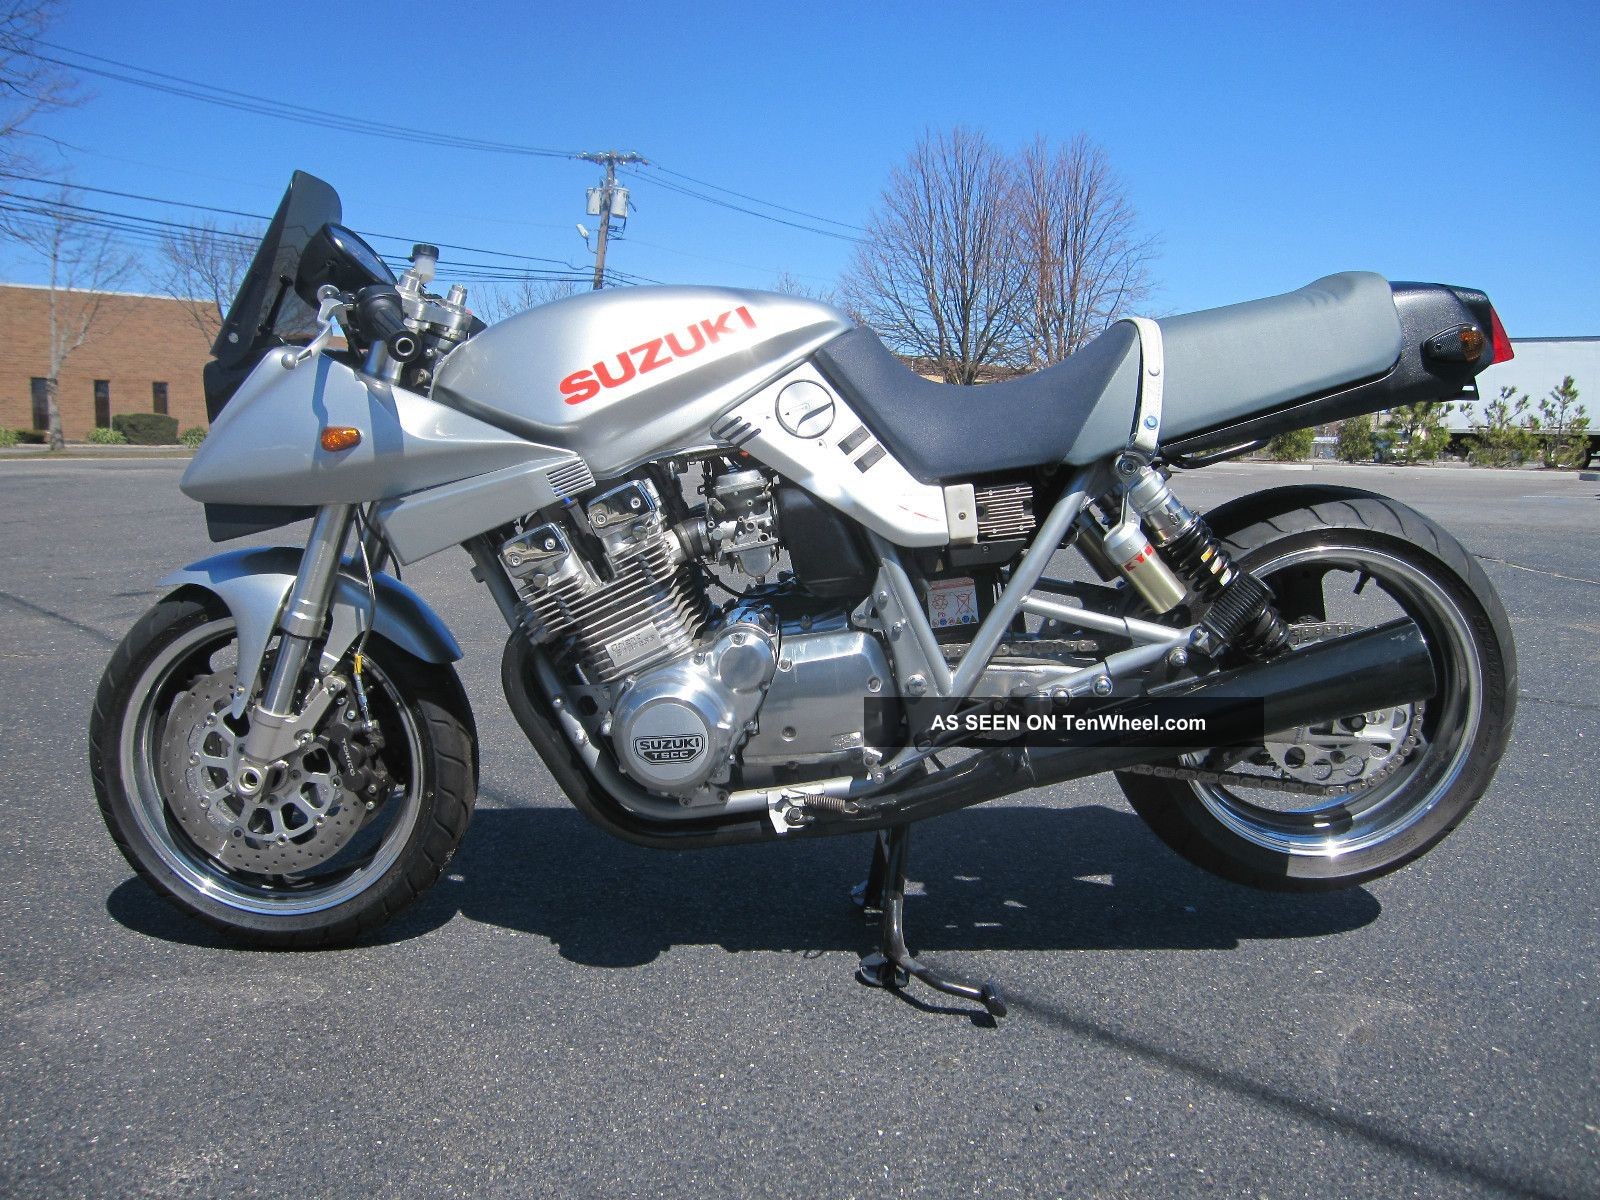 1982 Suzuki Gs1000sz Katana GSX / Katana photo